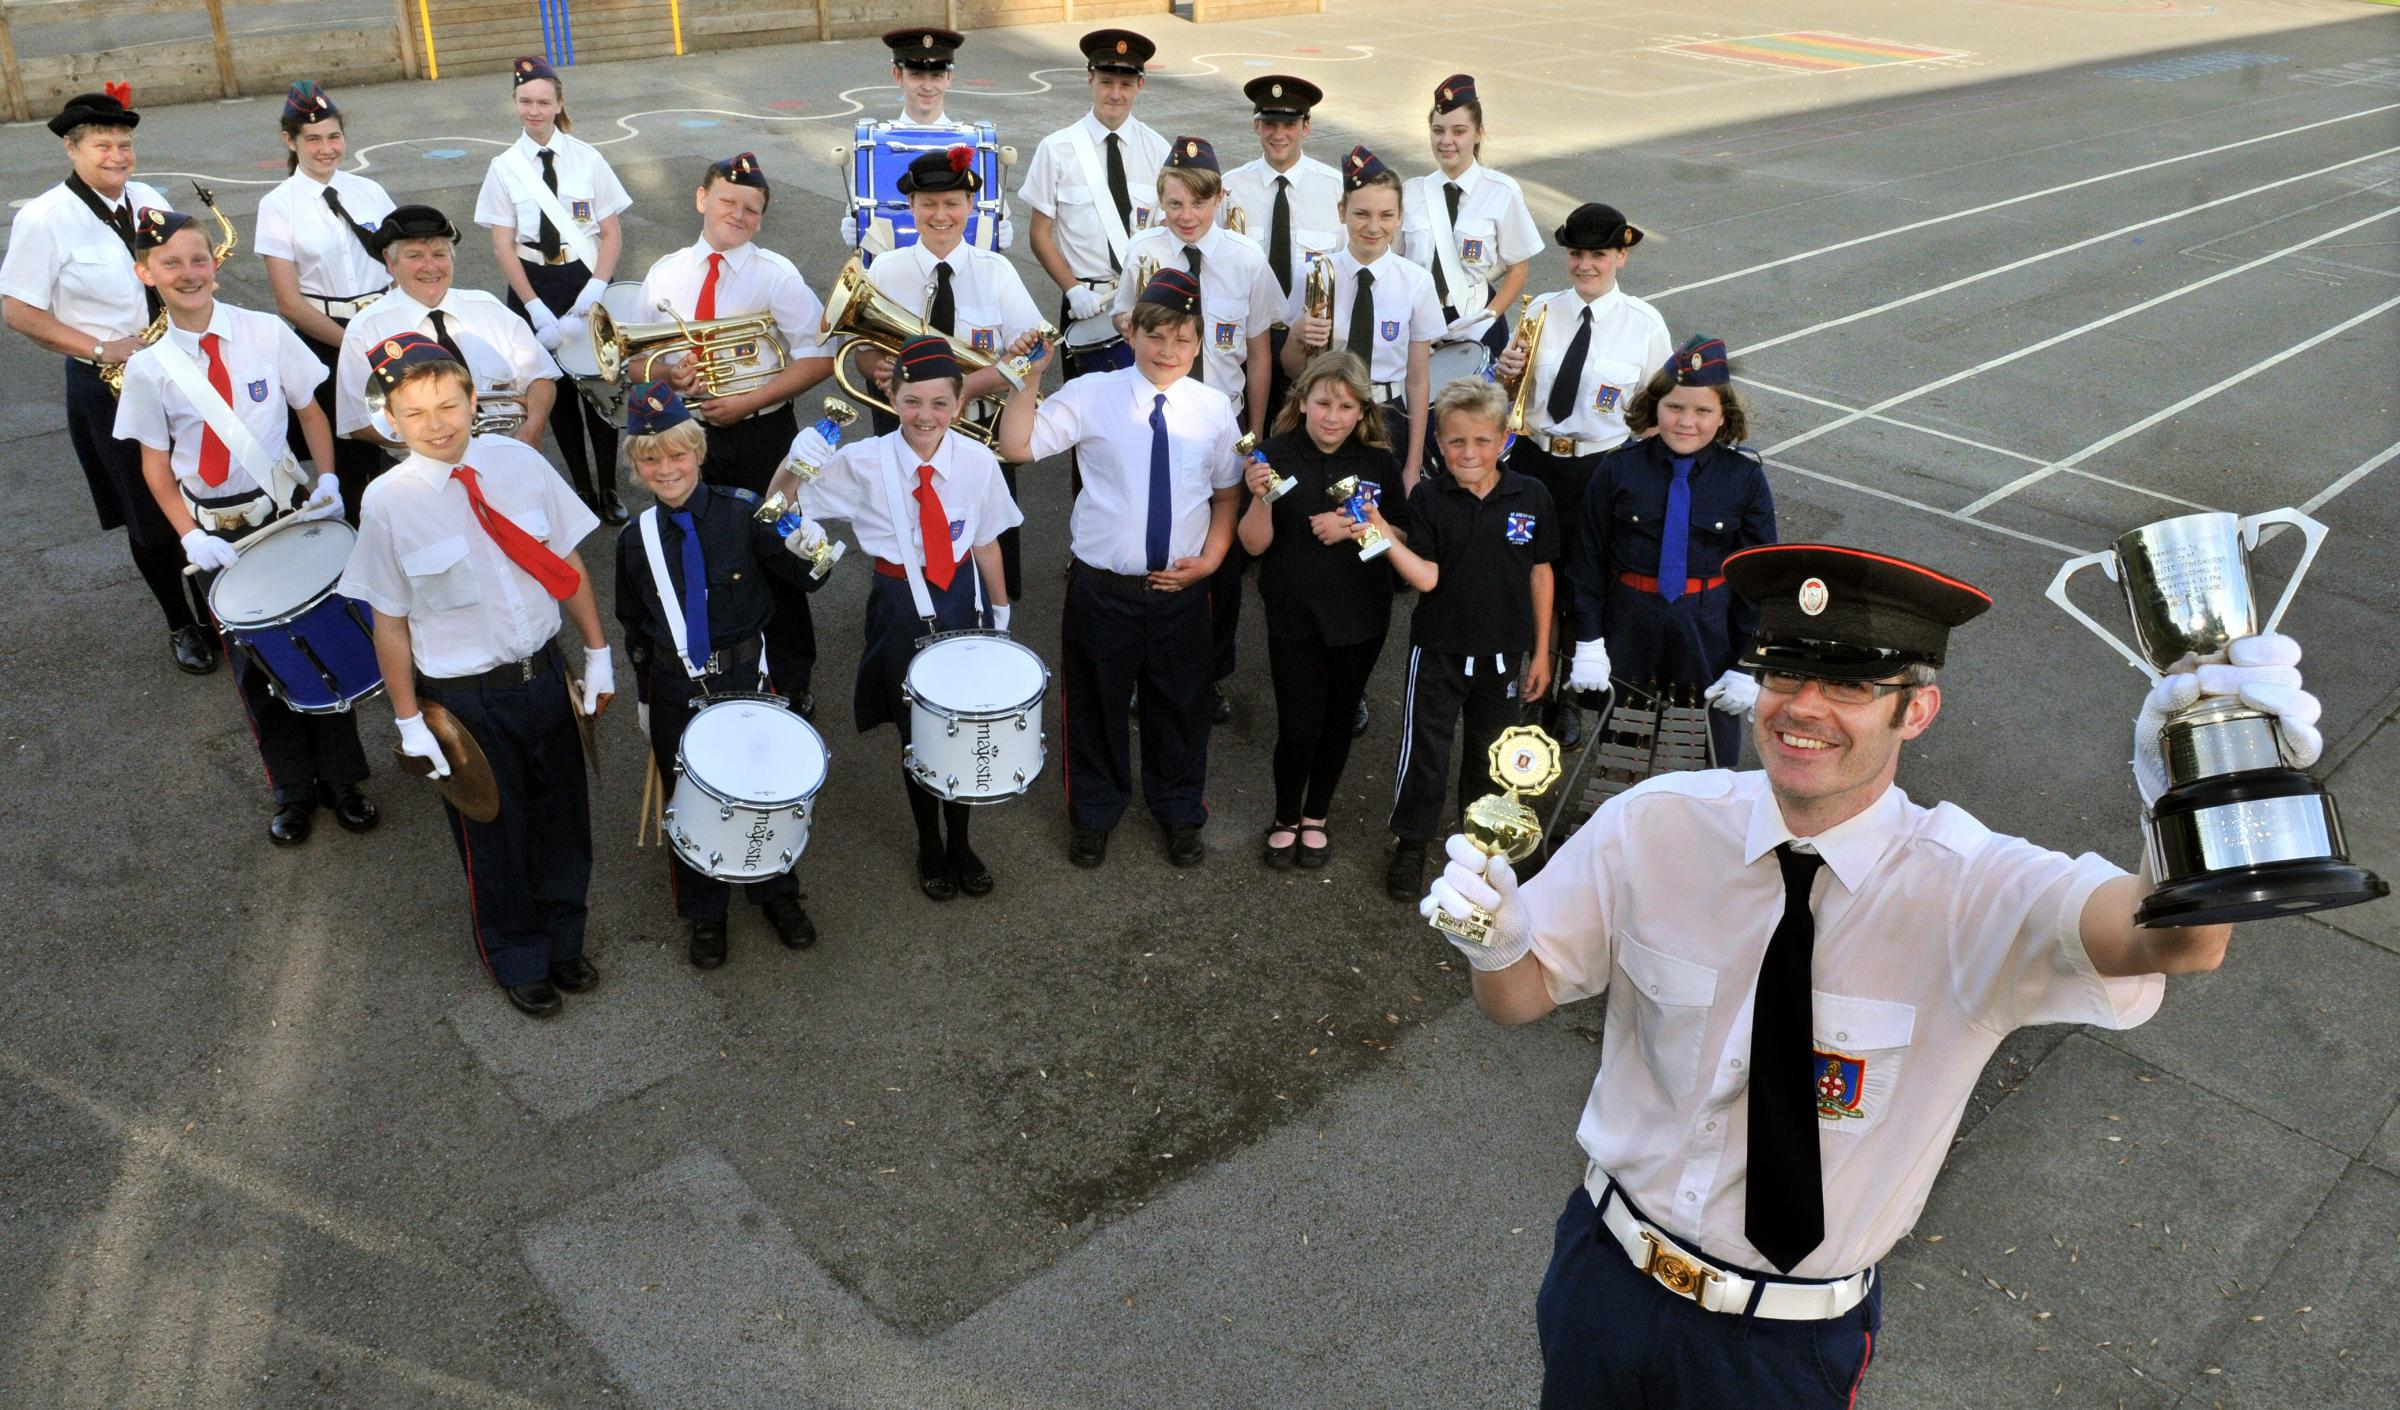 Andy Stubbs with members of St Andrew's Band, who have won a national award for the fifth time